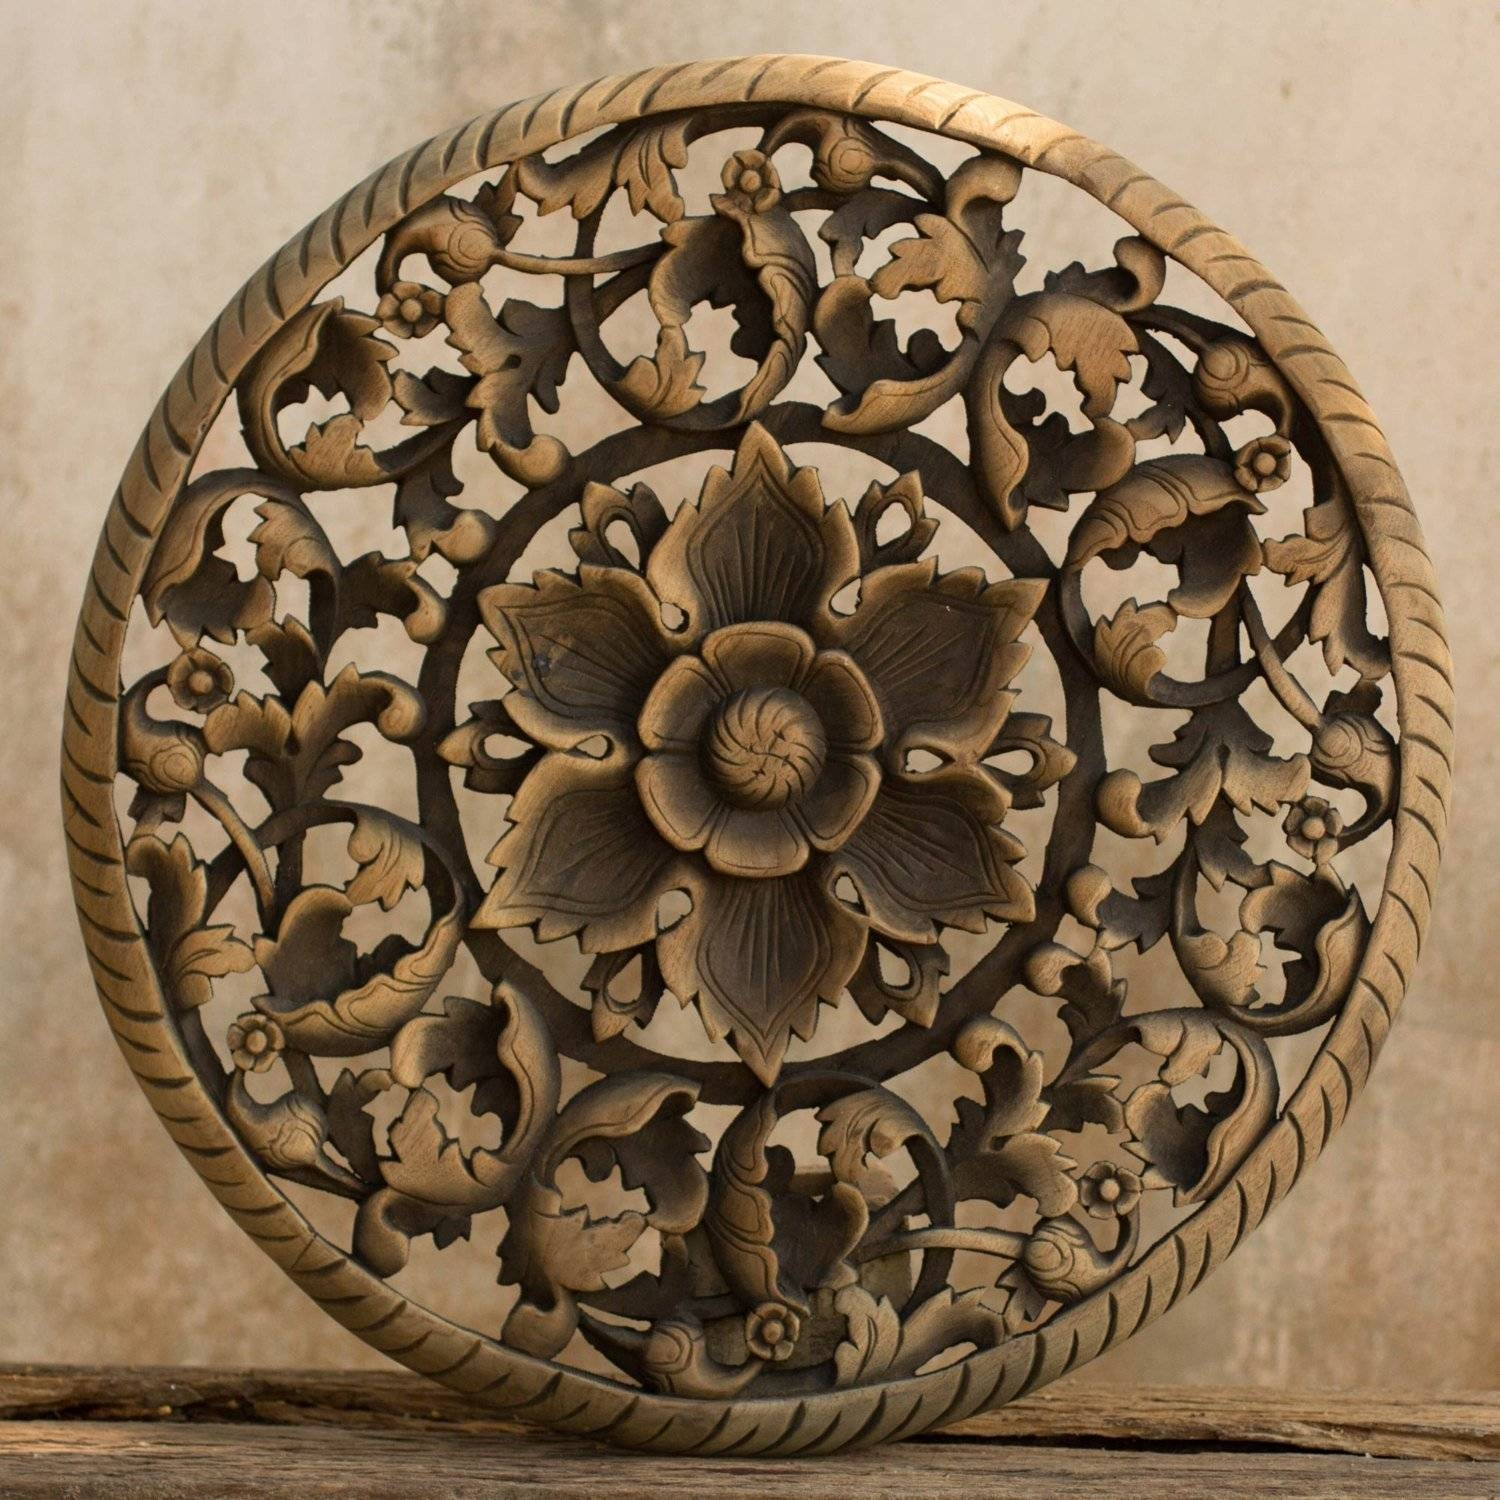 Tree Dimensional Floral Wooden Wall Hanging – Siam Sawadee Intended For Current Wood Panel Wall Art (View 13 of 20)